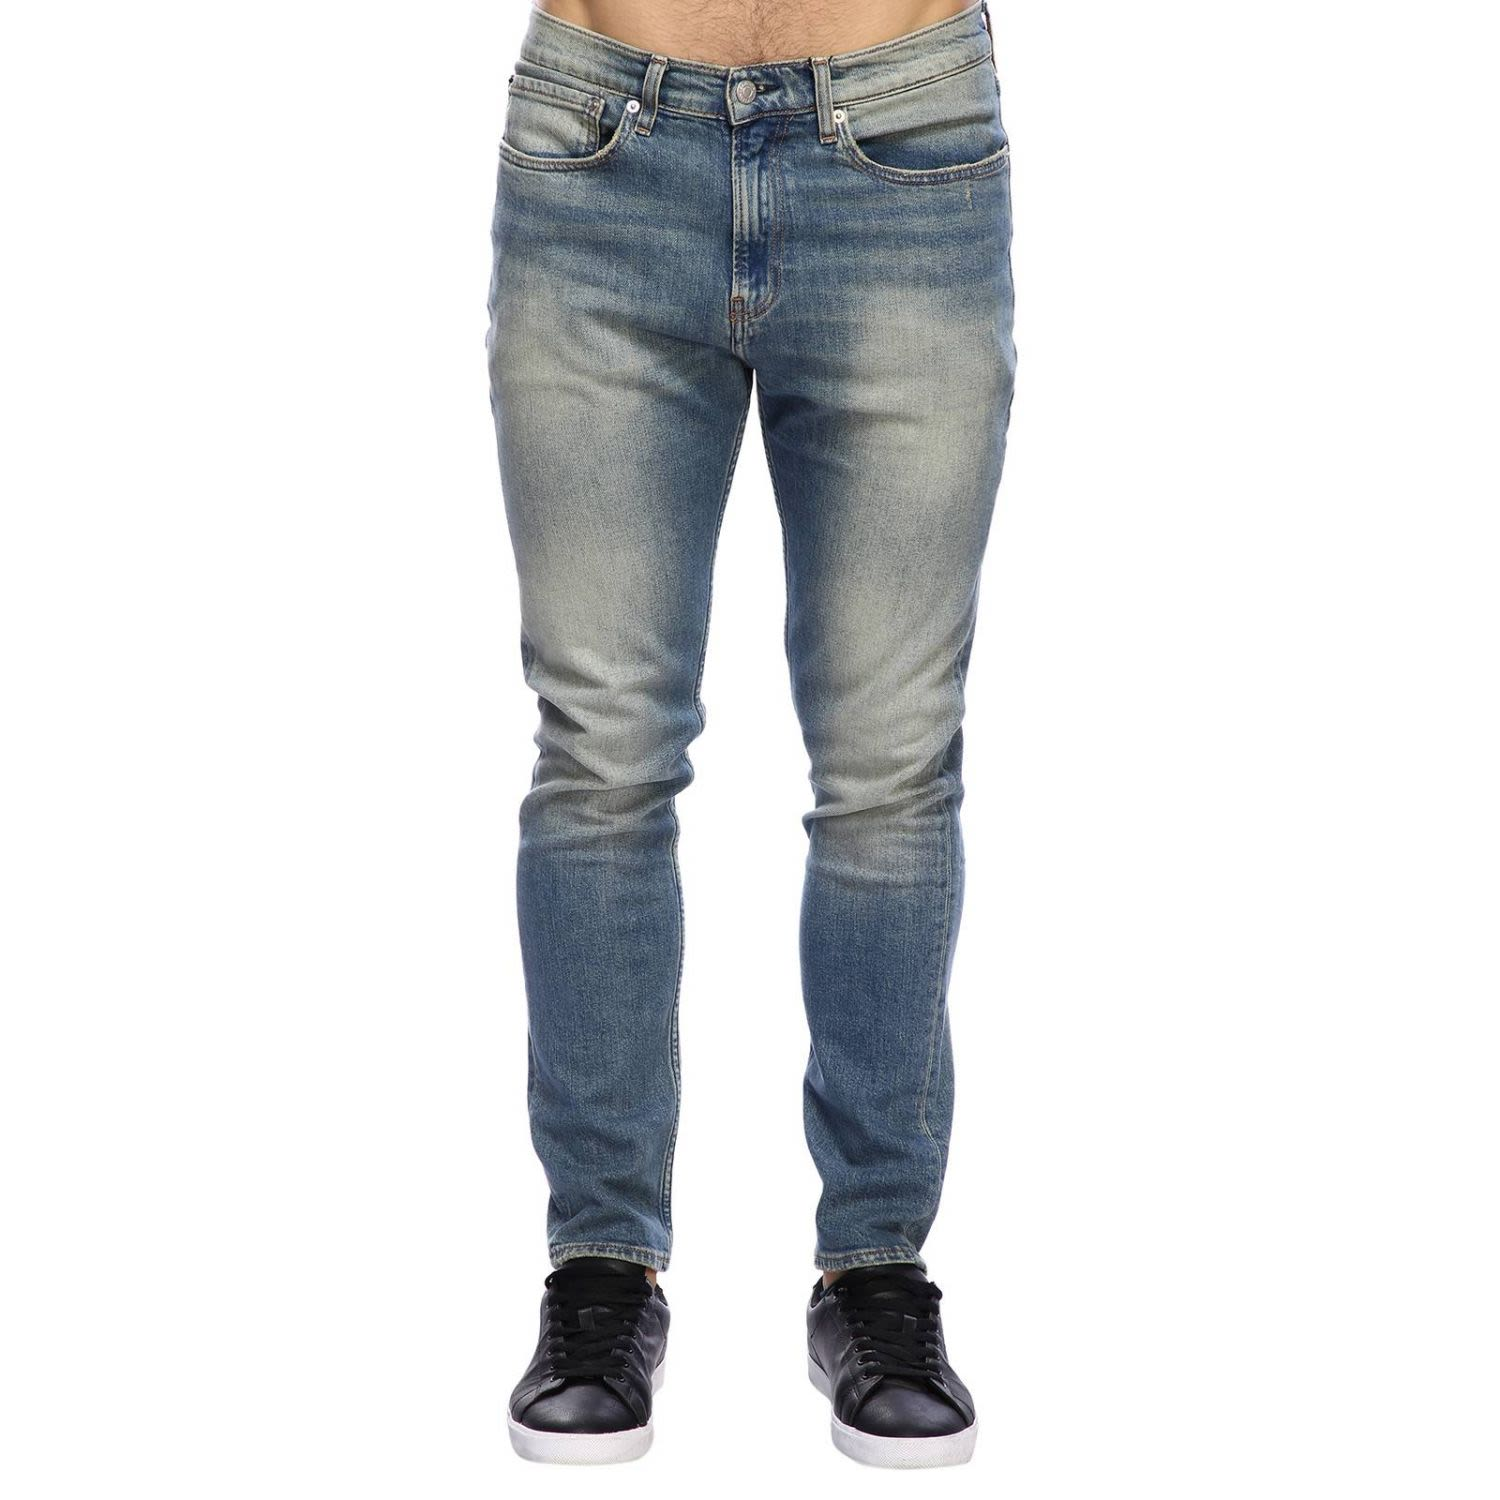 Calvin Klein Jeans Jeans Jeans Men Calvin Klein Jeans